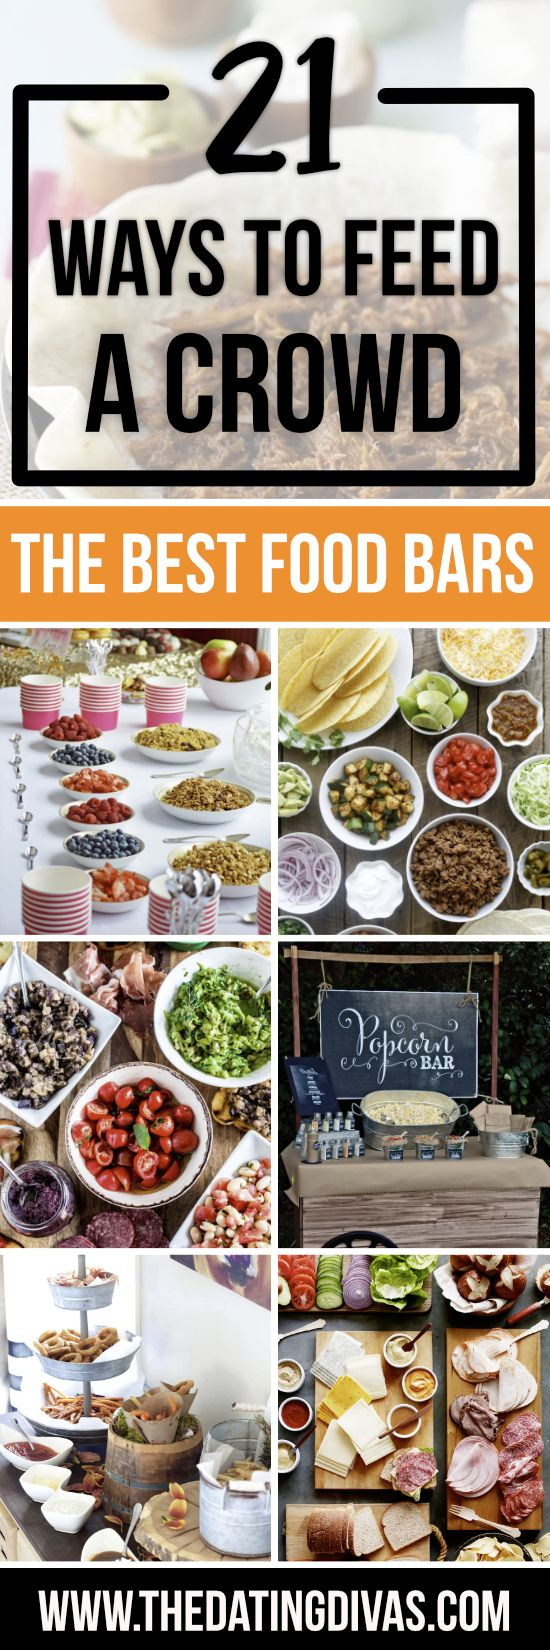 Easy grilling recipes for large groups for Food bar ideas for a party